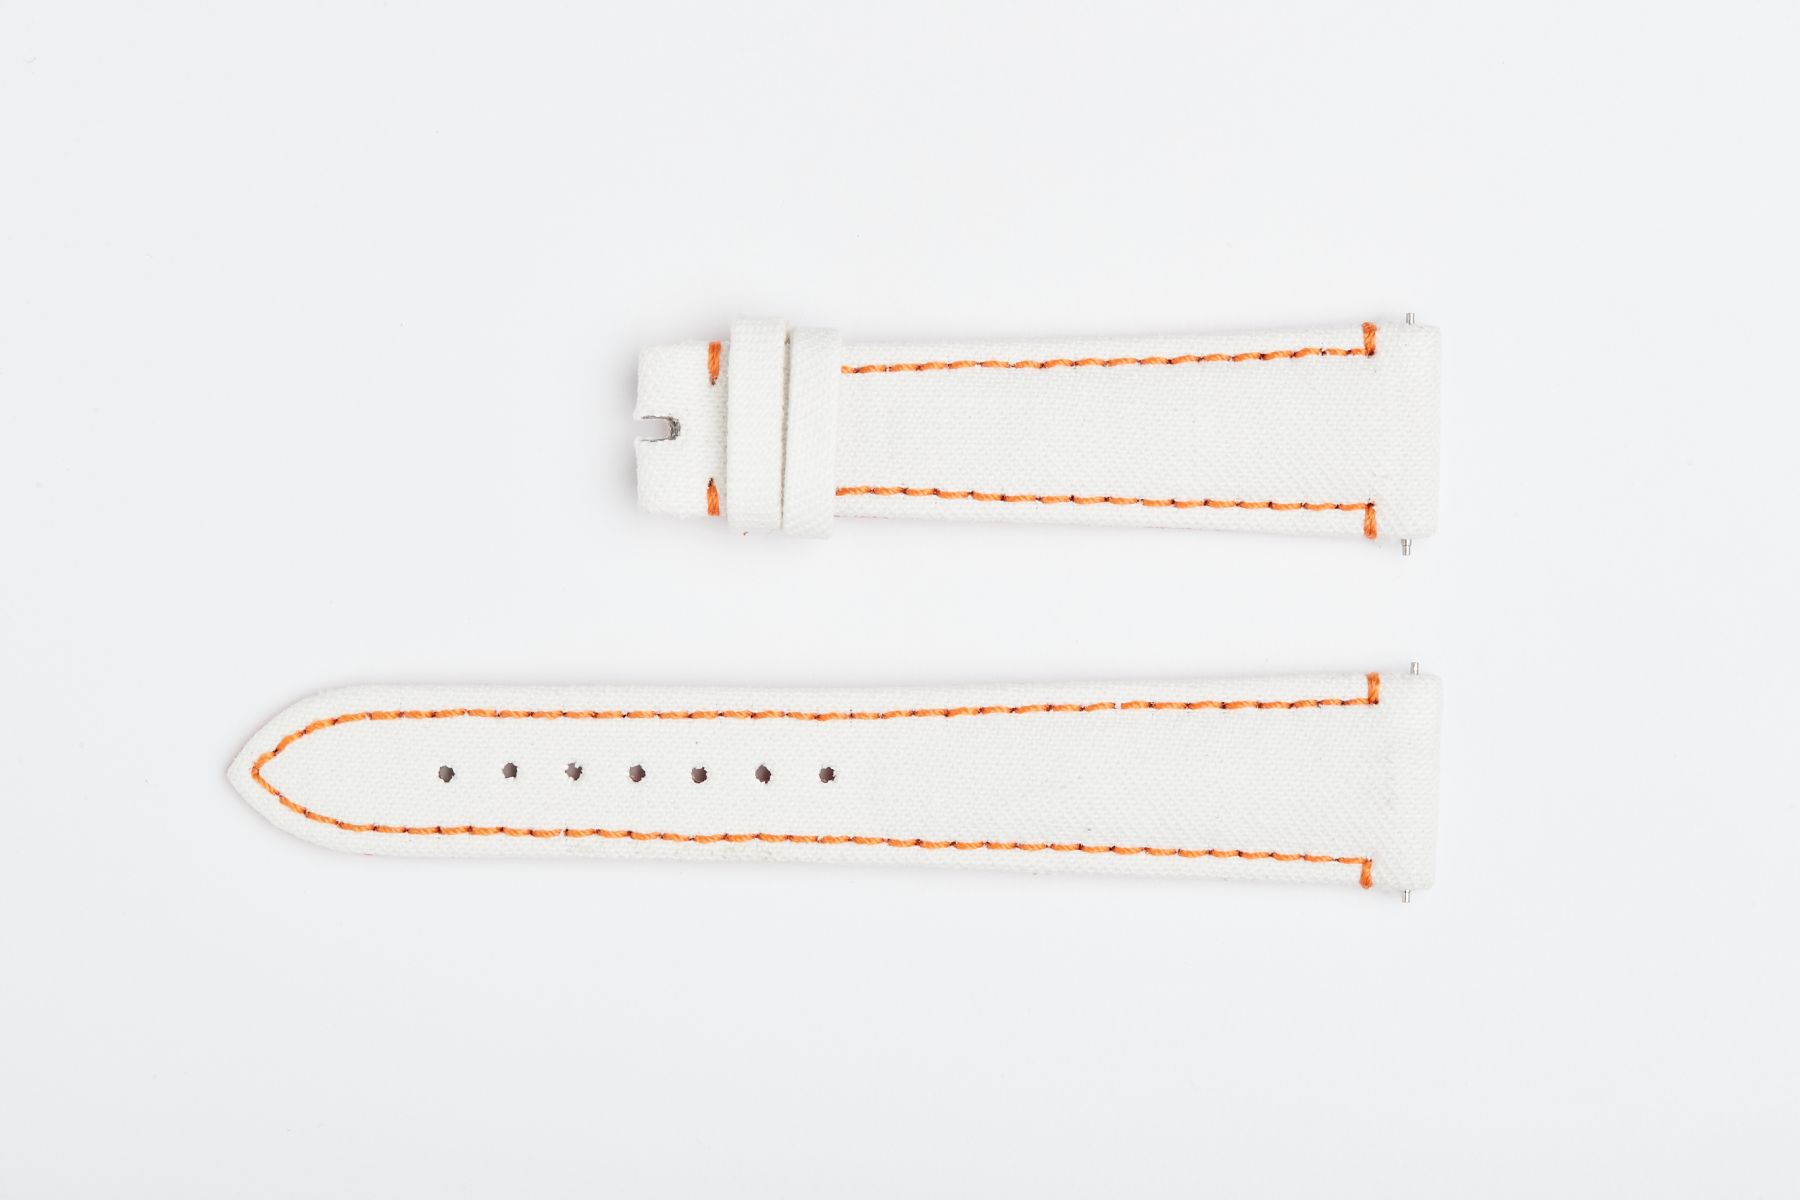 Sapporo White Japanese Denim strap 20mm / Rolex Daydate Dayjust style with Quick release